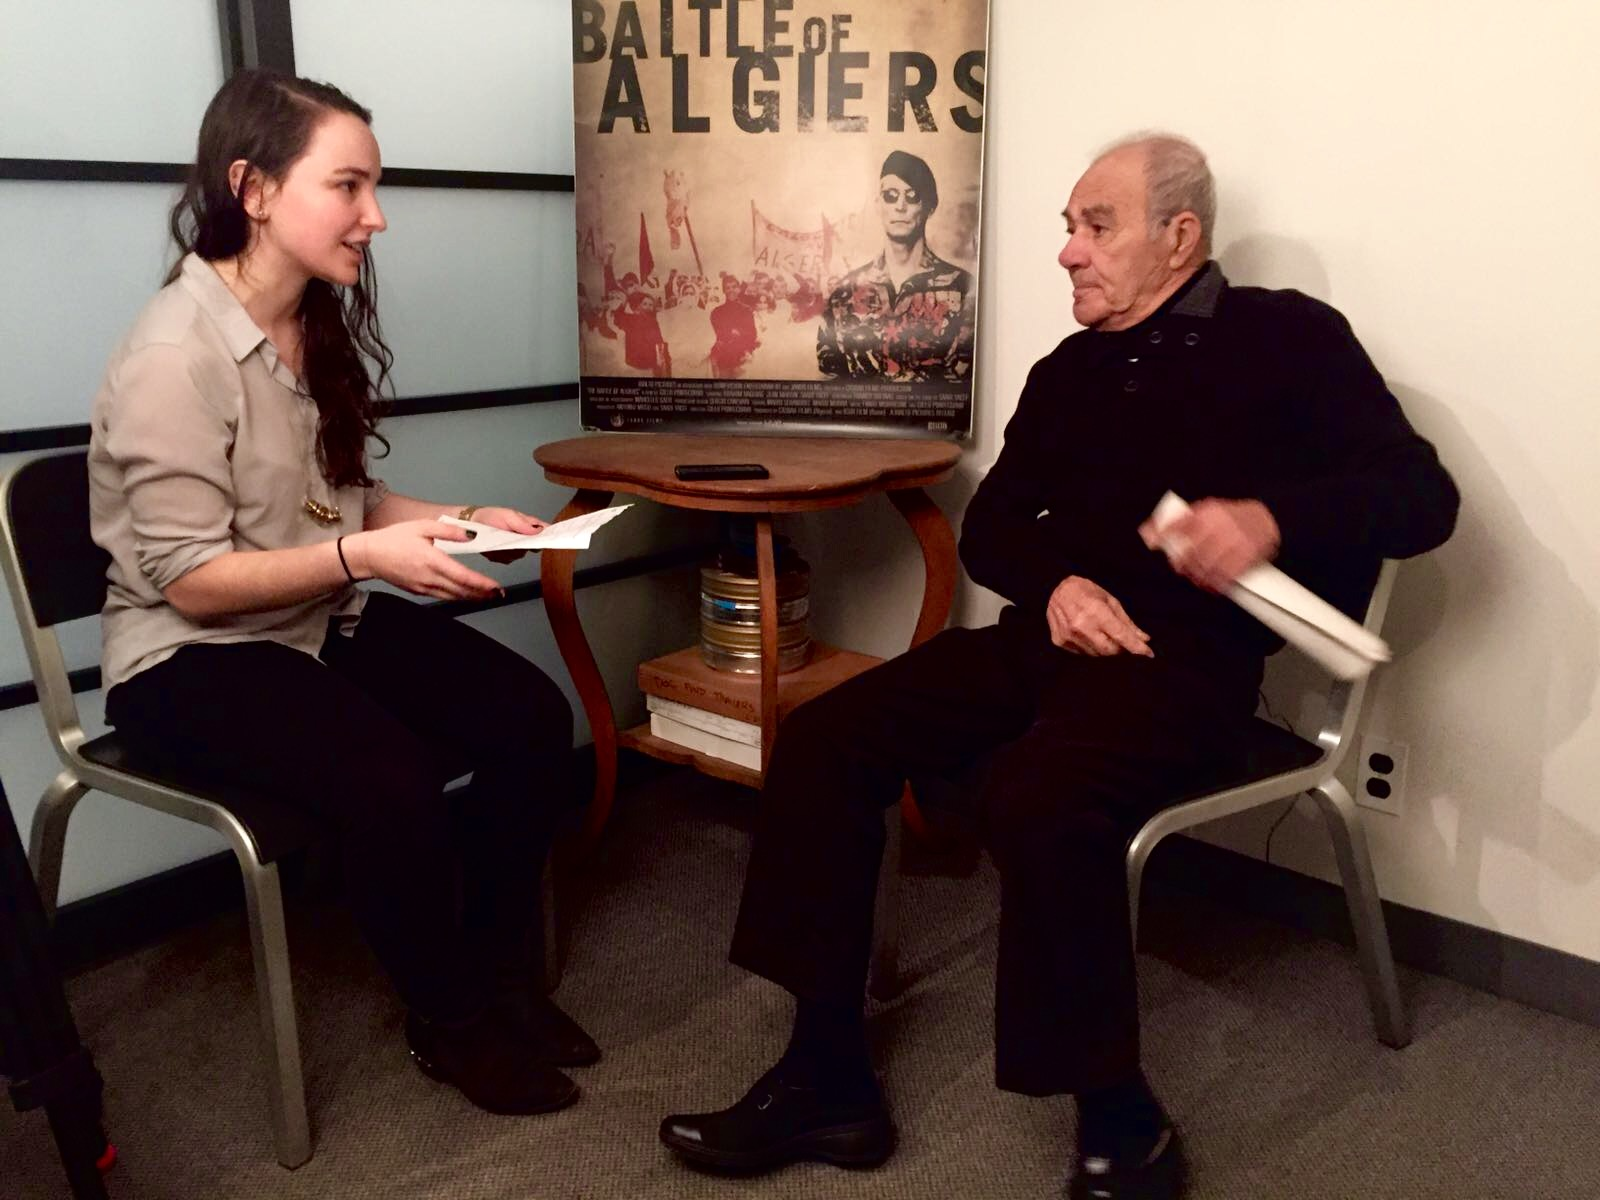 SAADI YACEF IN CONVERSATION WITH LSP'S EMILY LEVER AT FILM FORUM IN NEW YORK.